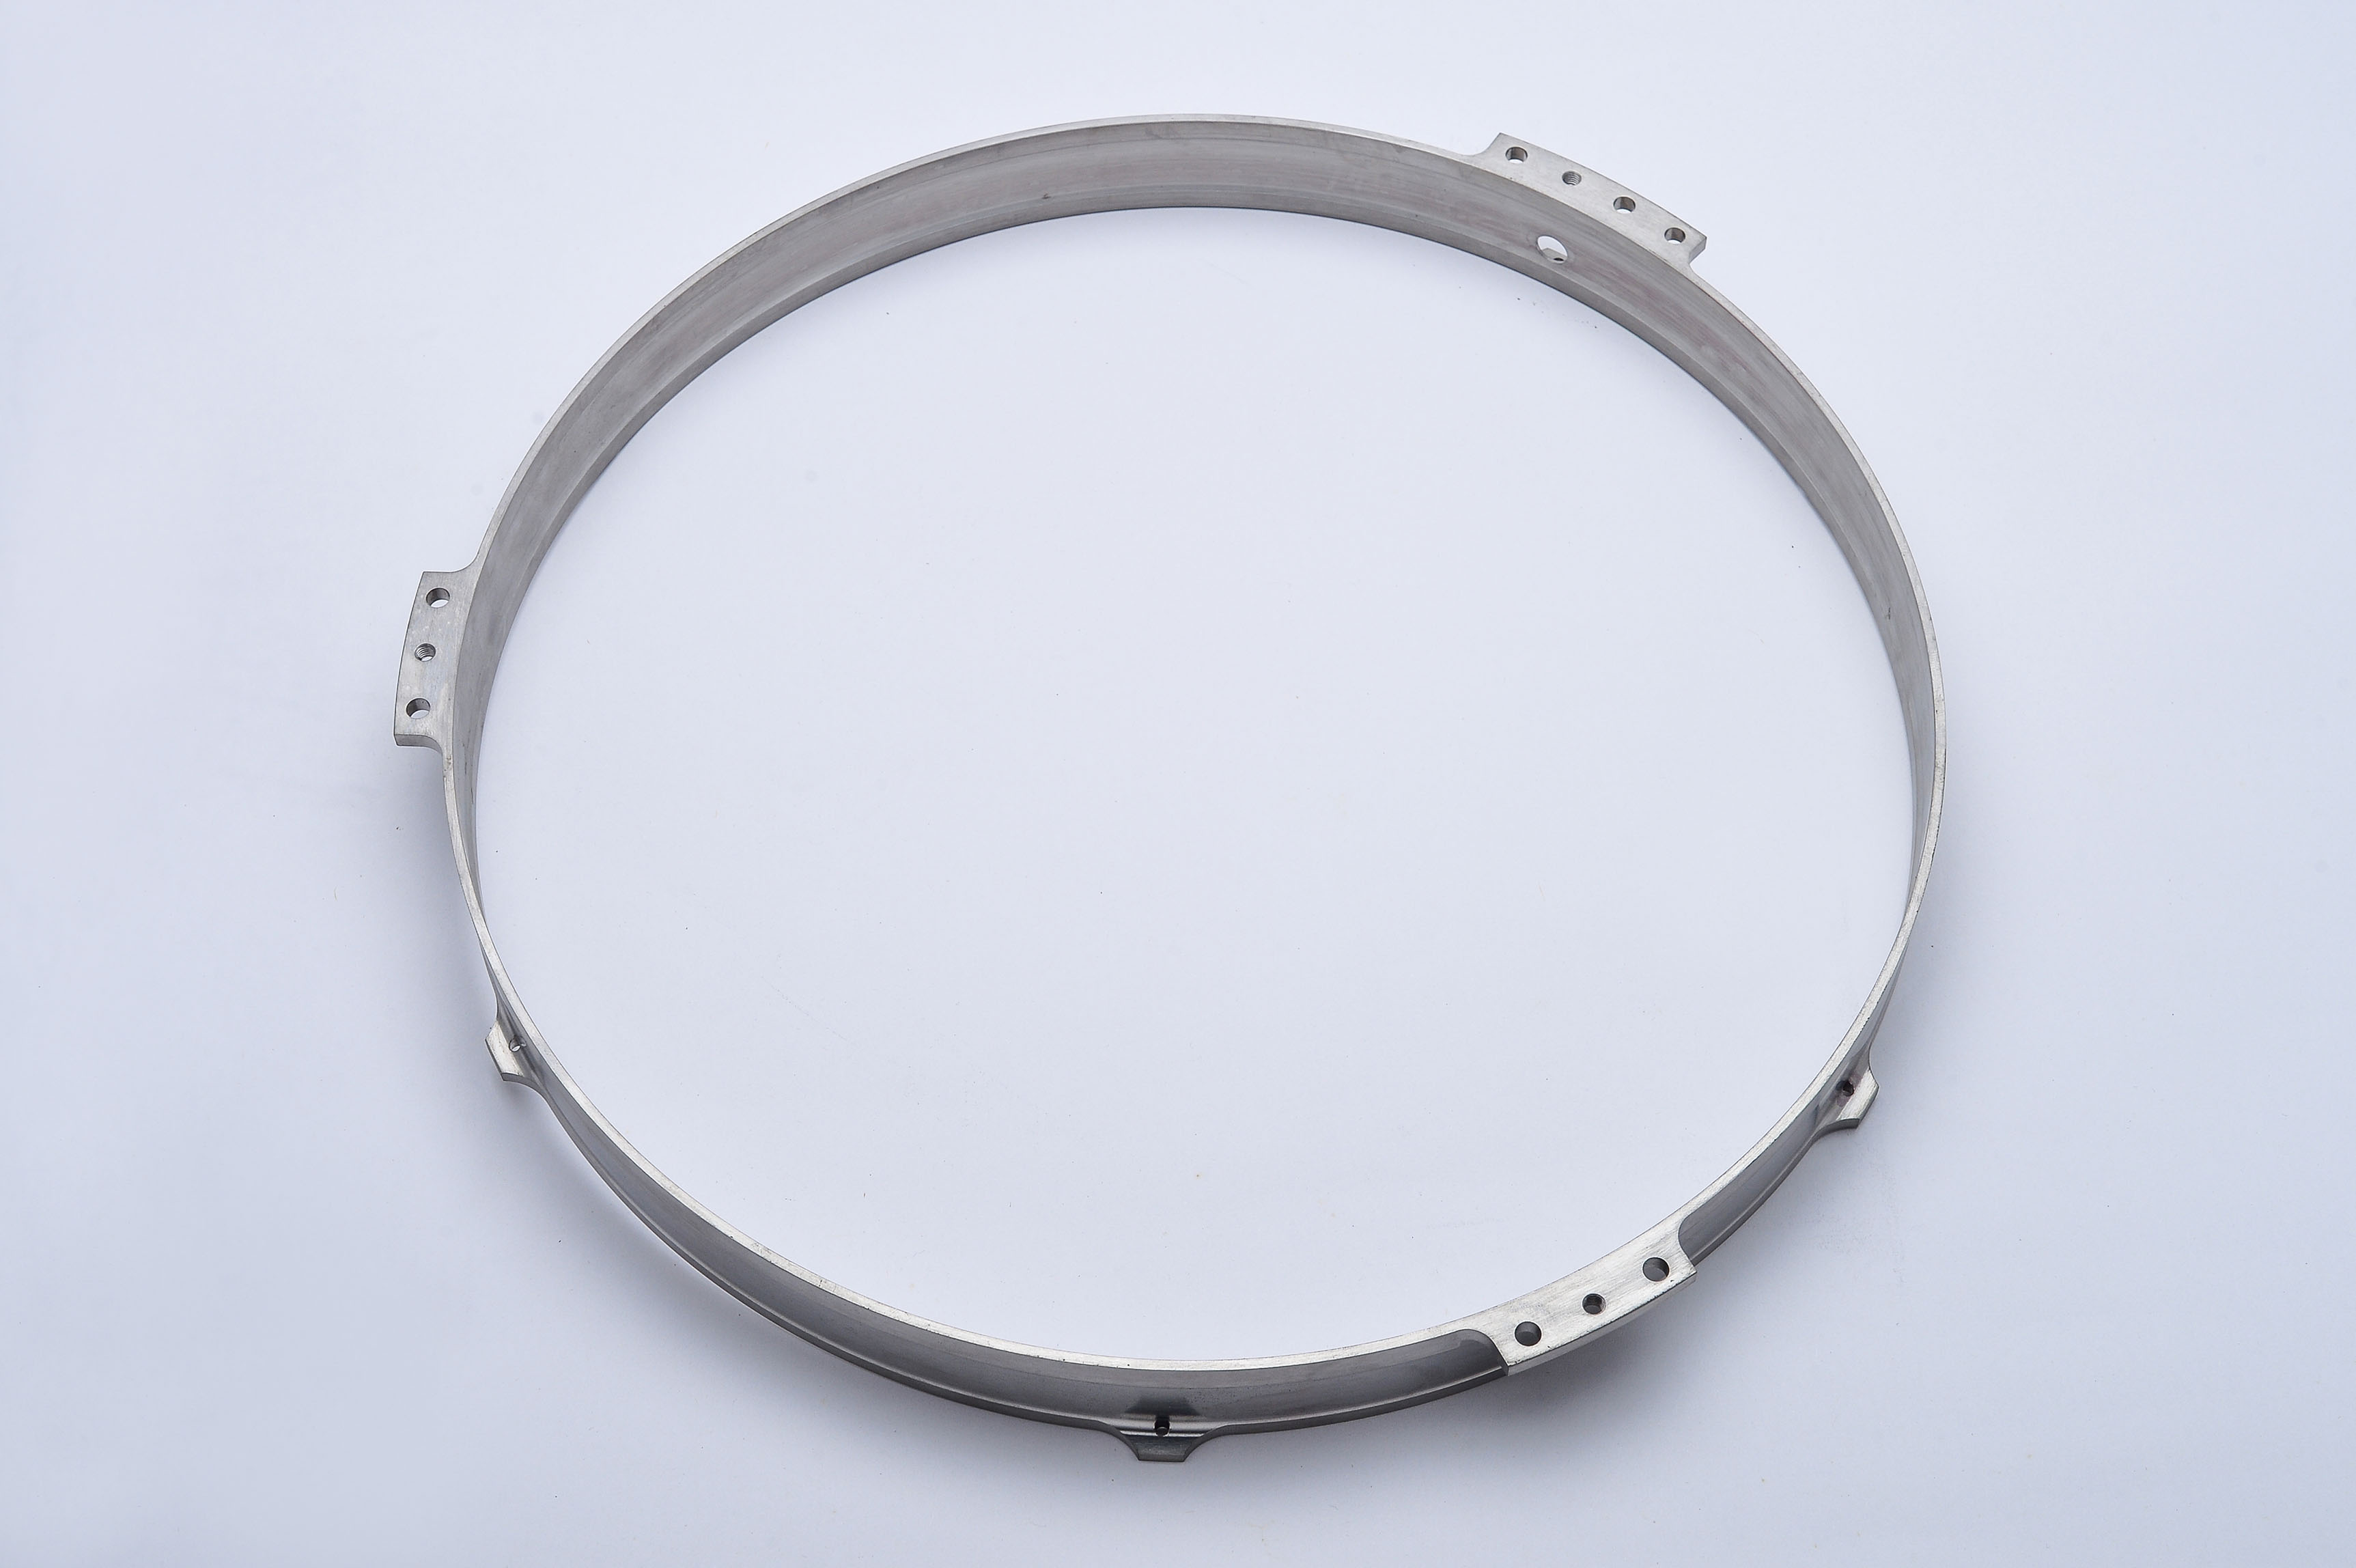 Compressor retainer ring